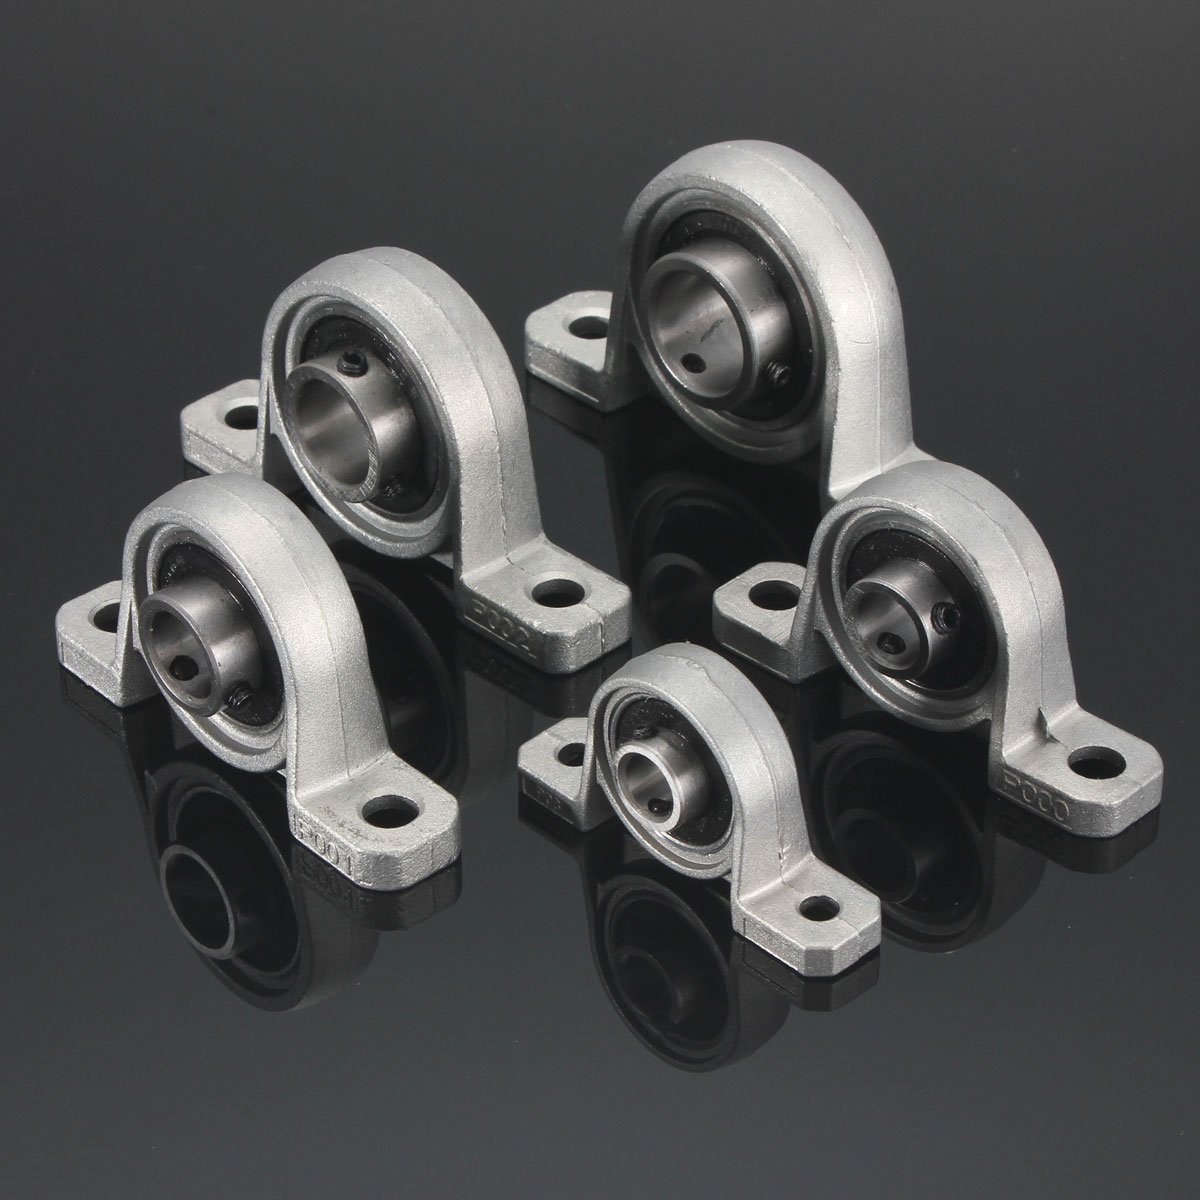 8mm to 35mm KP Series Bore Diameter Mounted Ball Bearings Zinc Alloy Pillow Block Linear Bearing